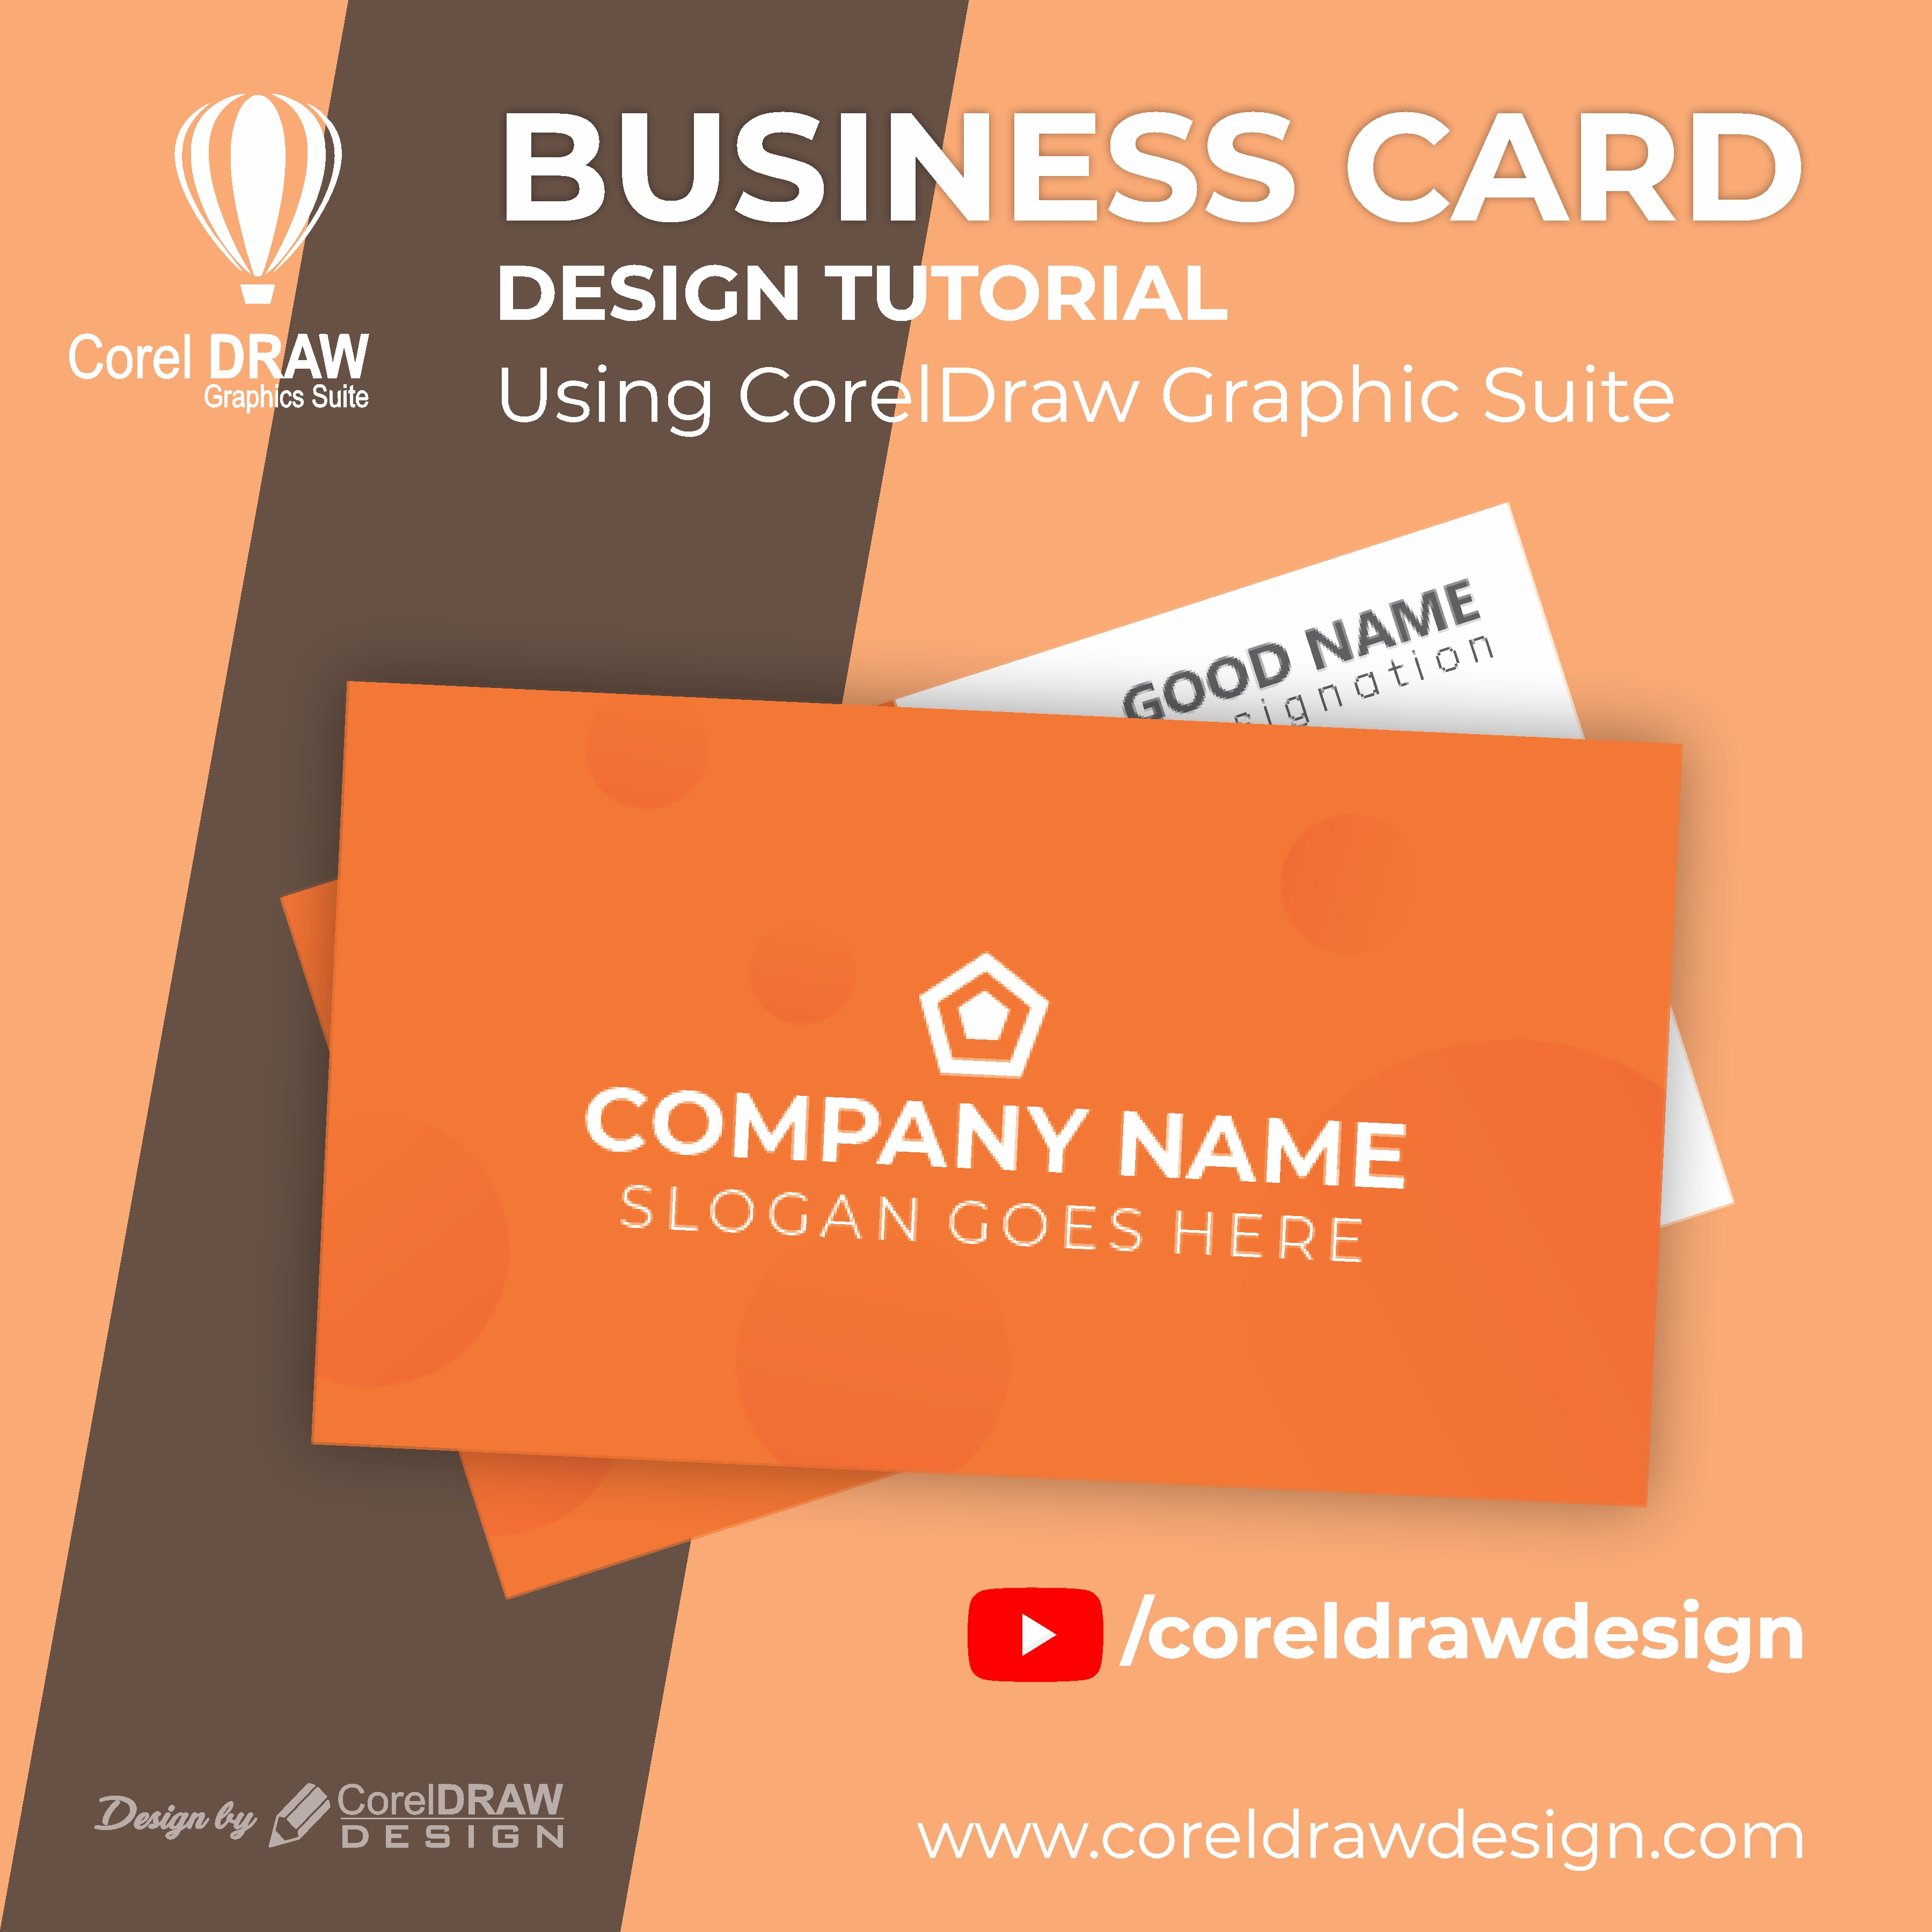 Creating From Scratch Creative Business Card   Digital Graphics   Tutorial   Coreldraw for Beginners